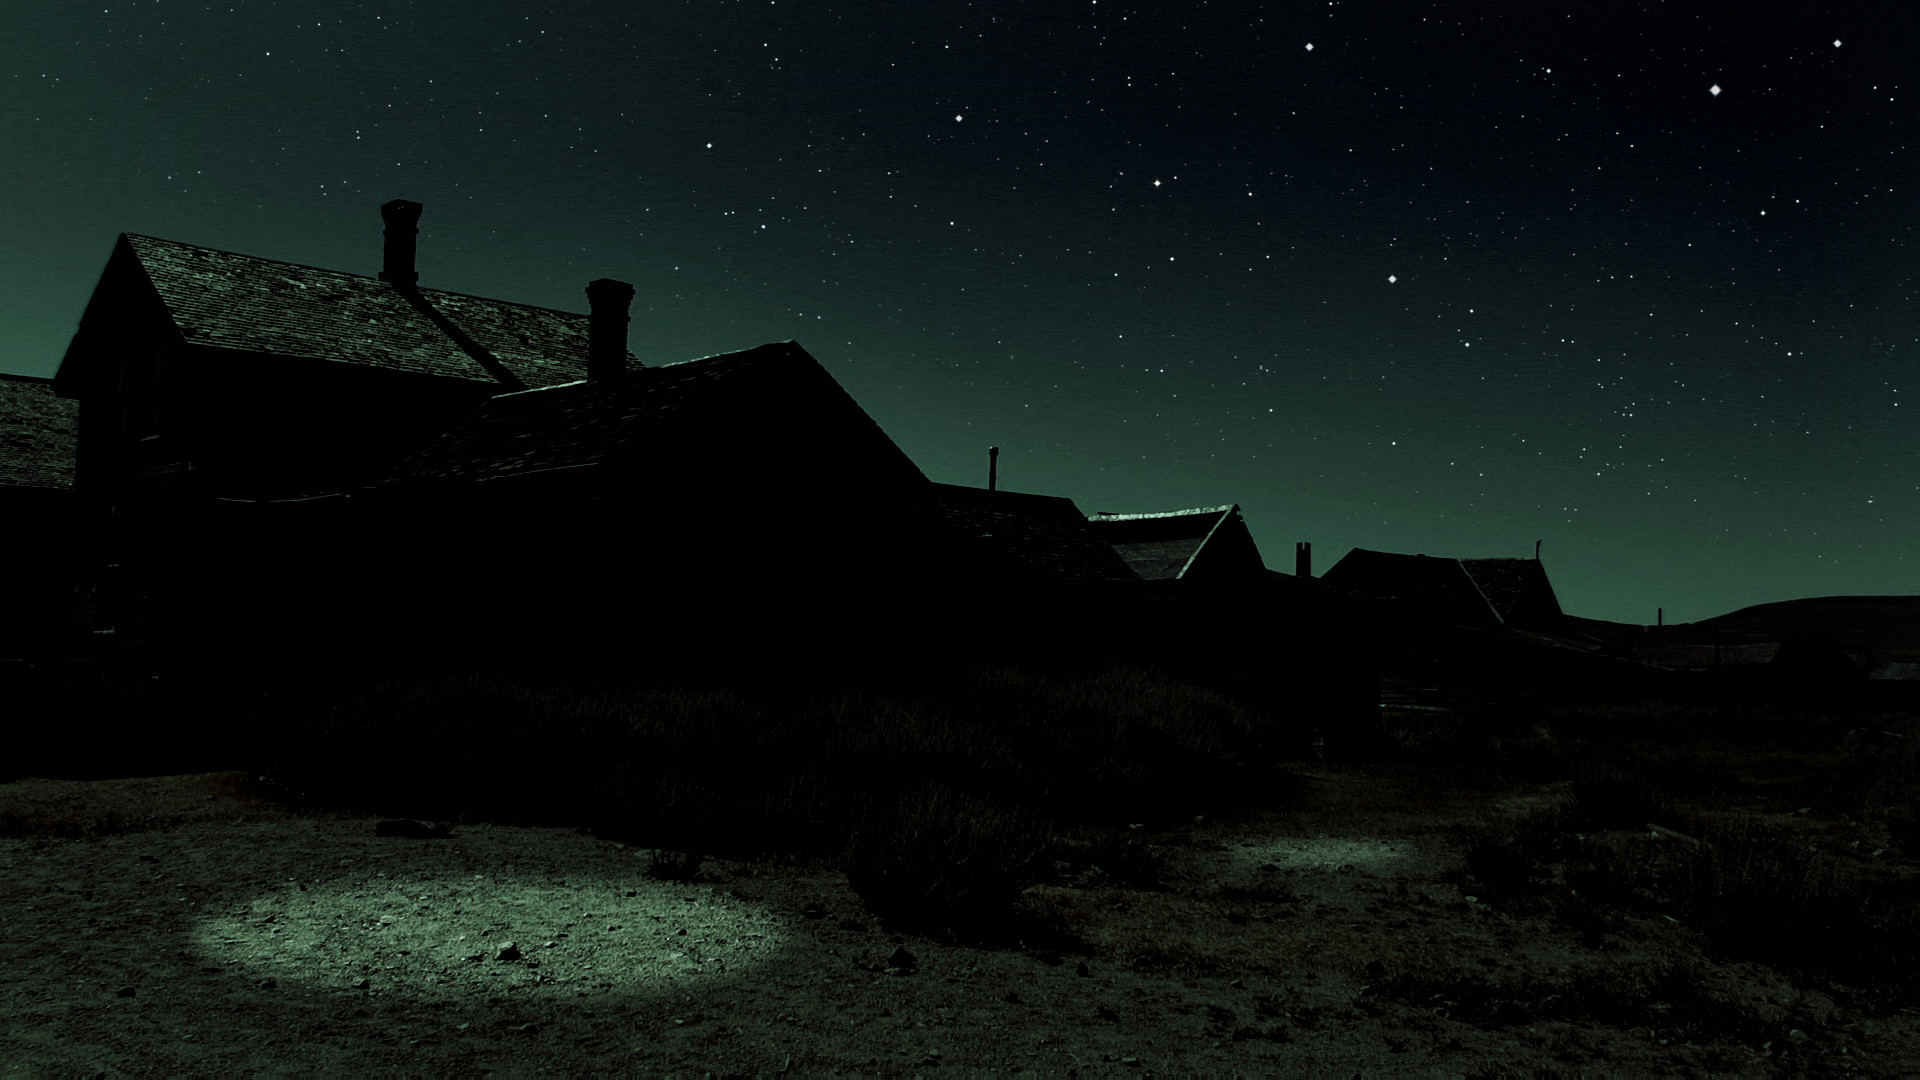 """Still from """"The Mysterious Disappearance of the Town's Last Resident"""""""